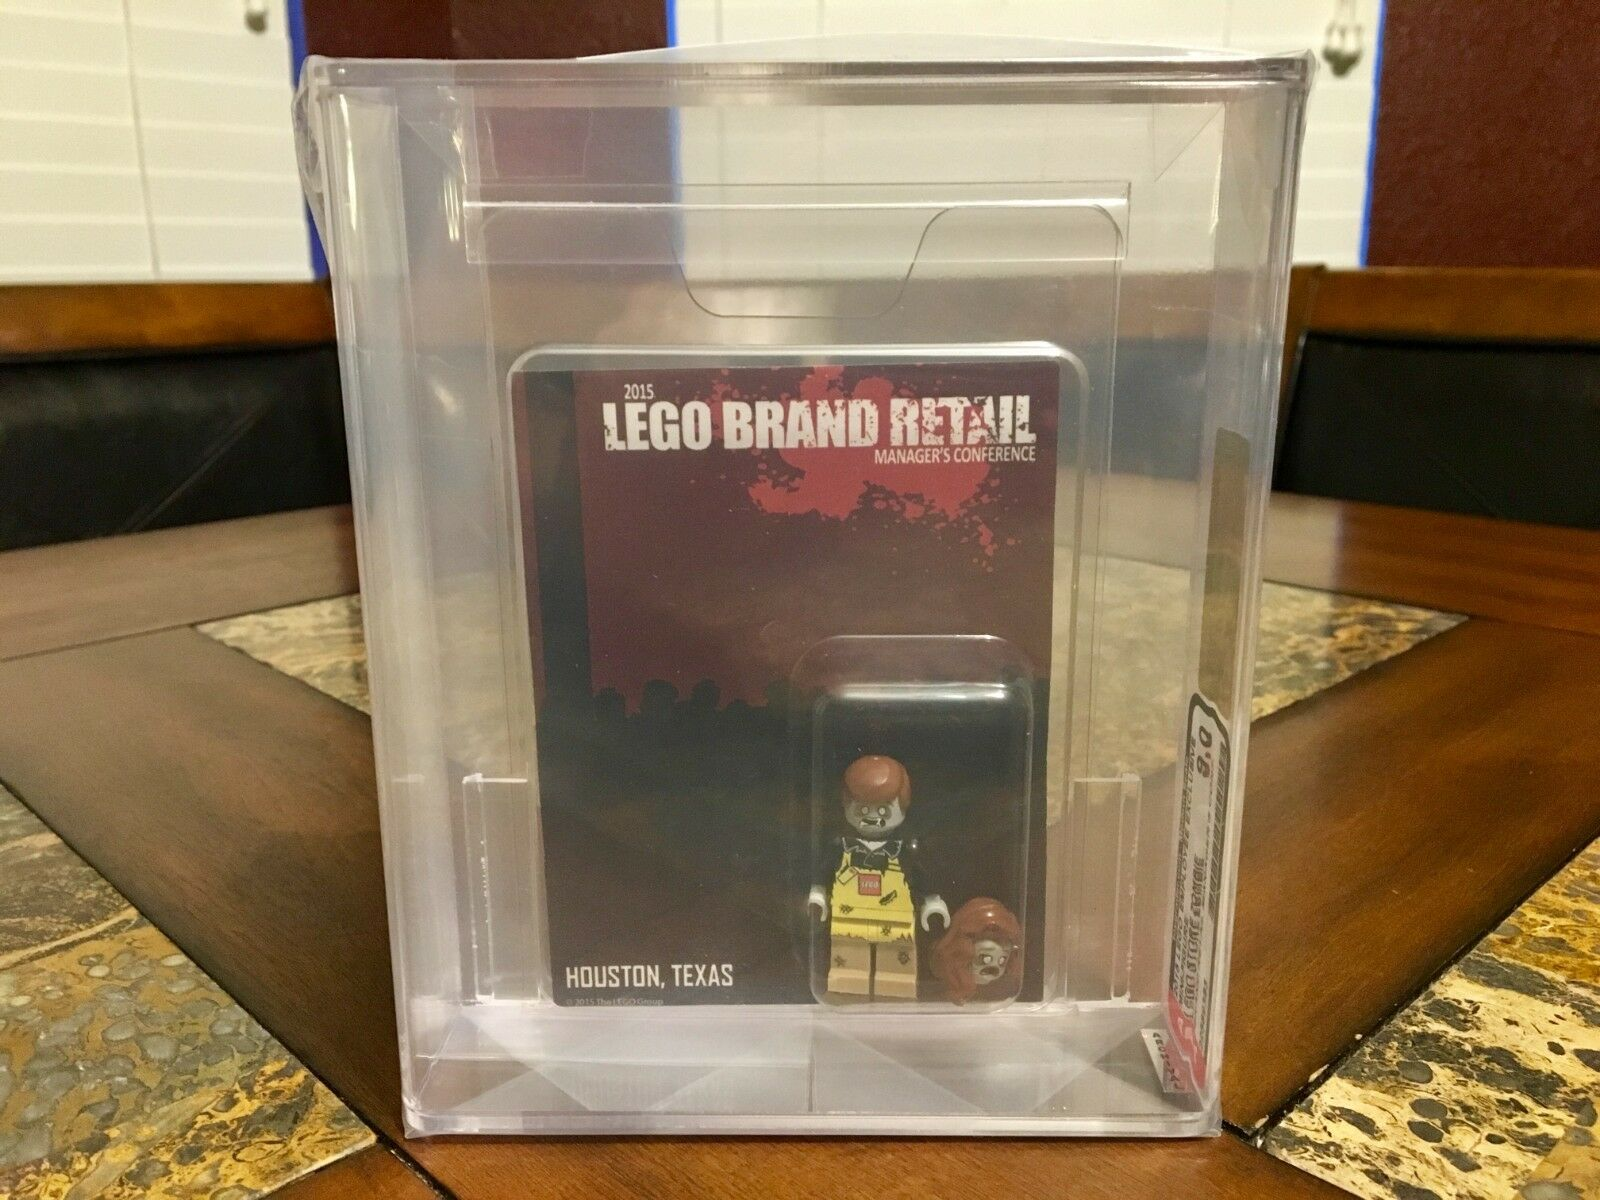 LEGO 2015 ZOMBIE MANAGERS CONFERENCE RARER THAN MR Gold SDCC AFA 9.0 BONUS SET